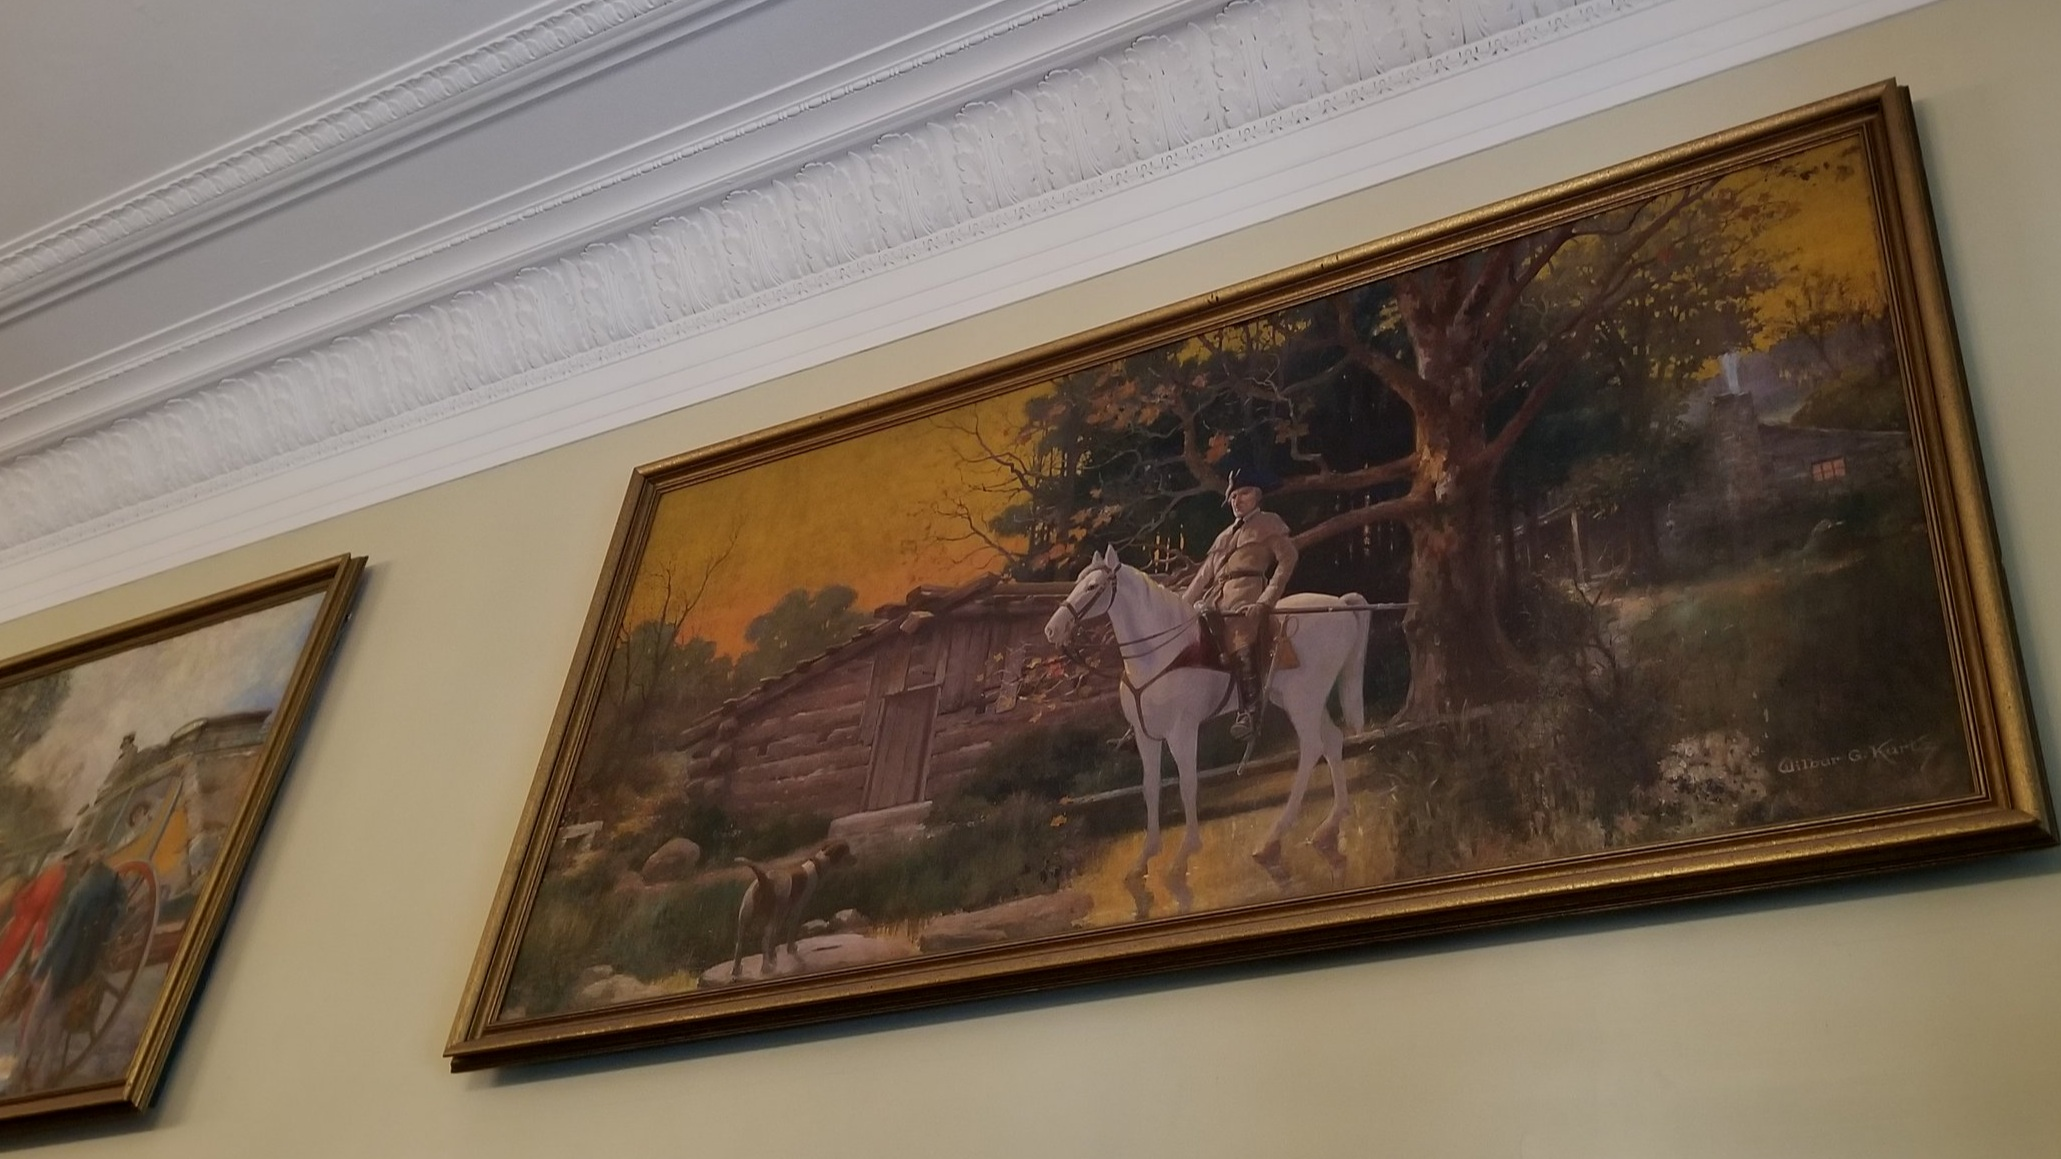 The Visitors Center for Abbeville is located in an old bank and features a collection of large paintings depicting 100 years of the town's history.